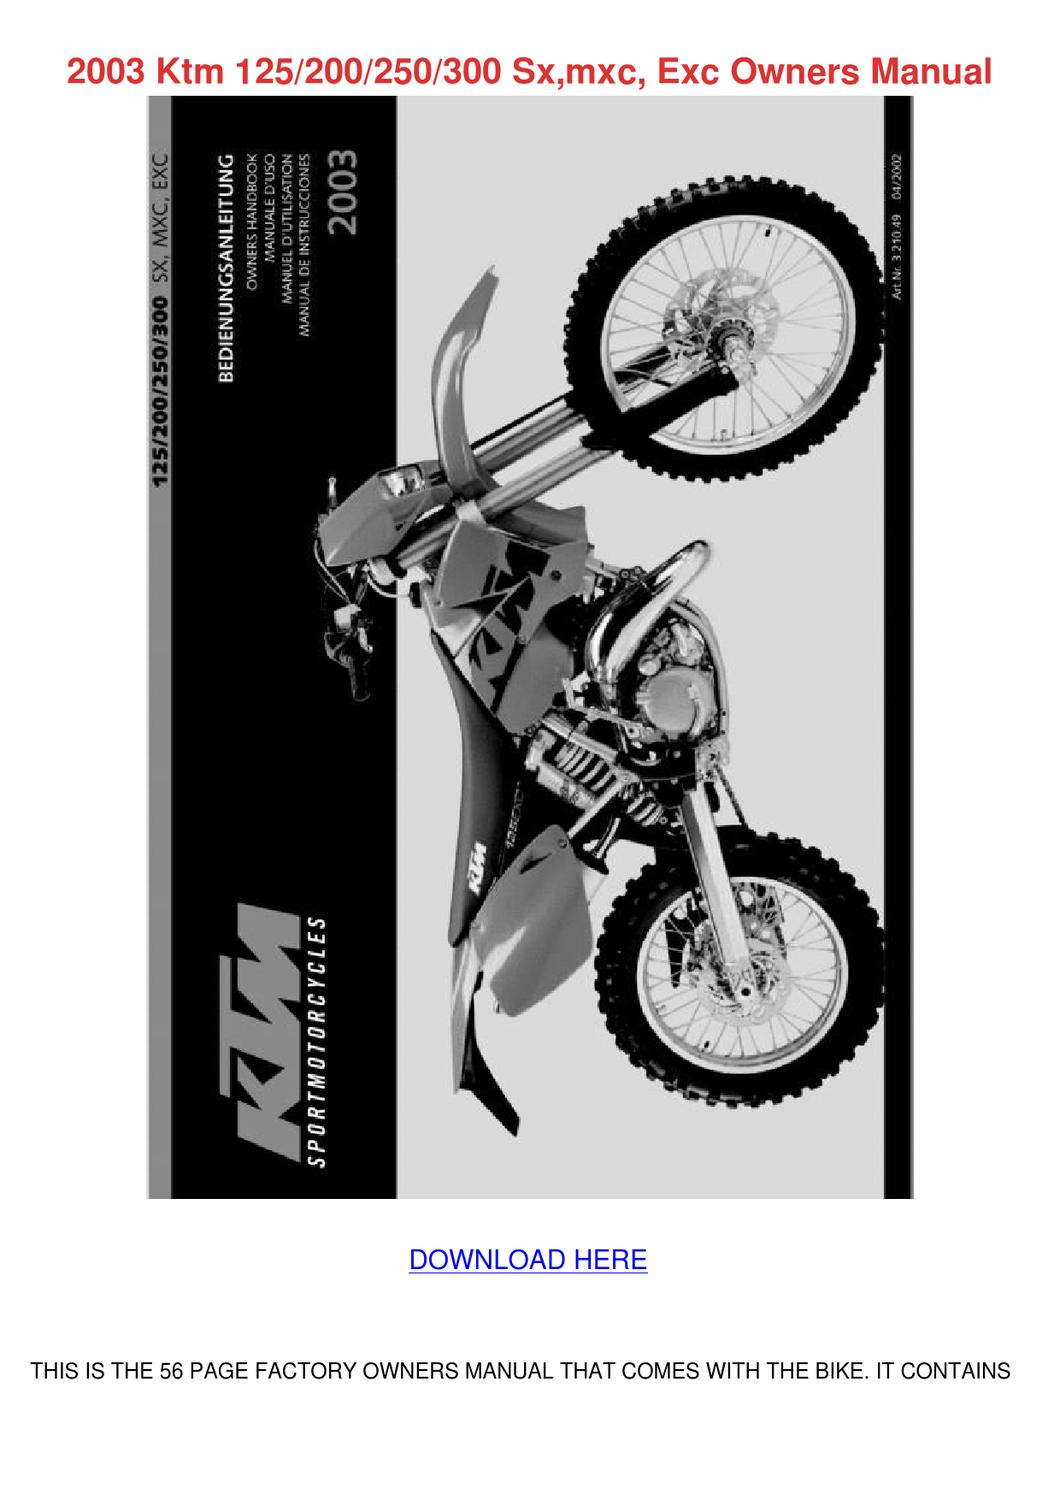 2003 Ktm 125200250300 Sxmxc Exc Owners Manual by KyleIngraham - issuu